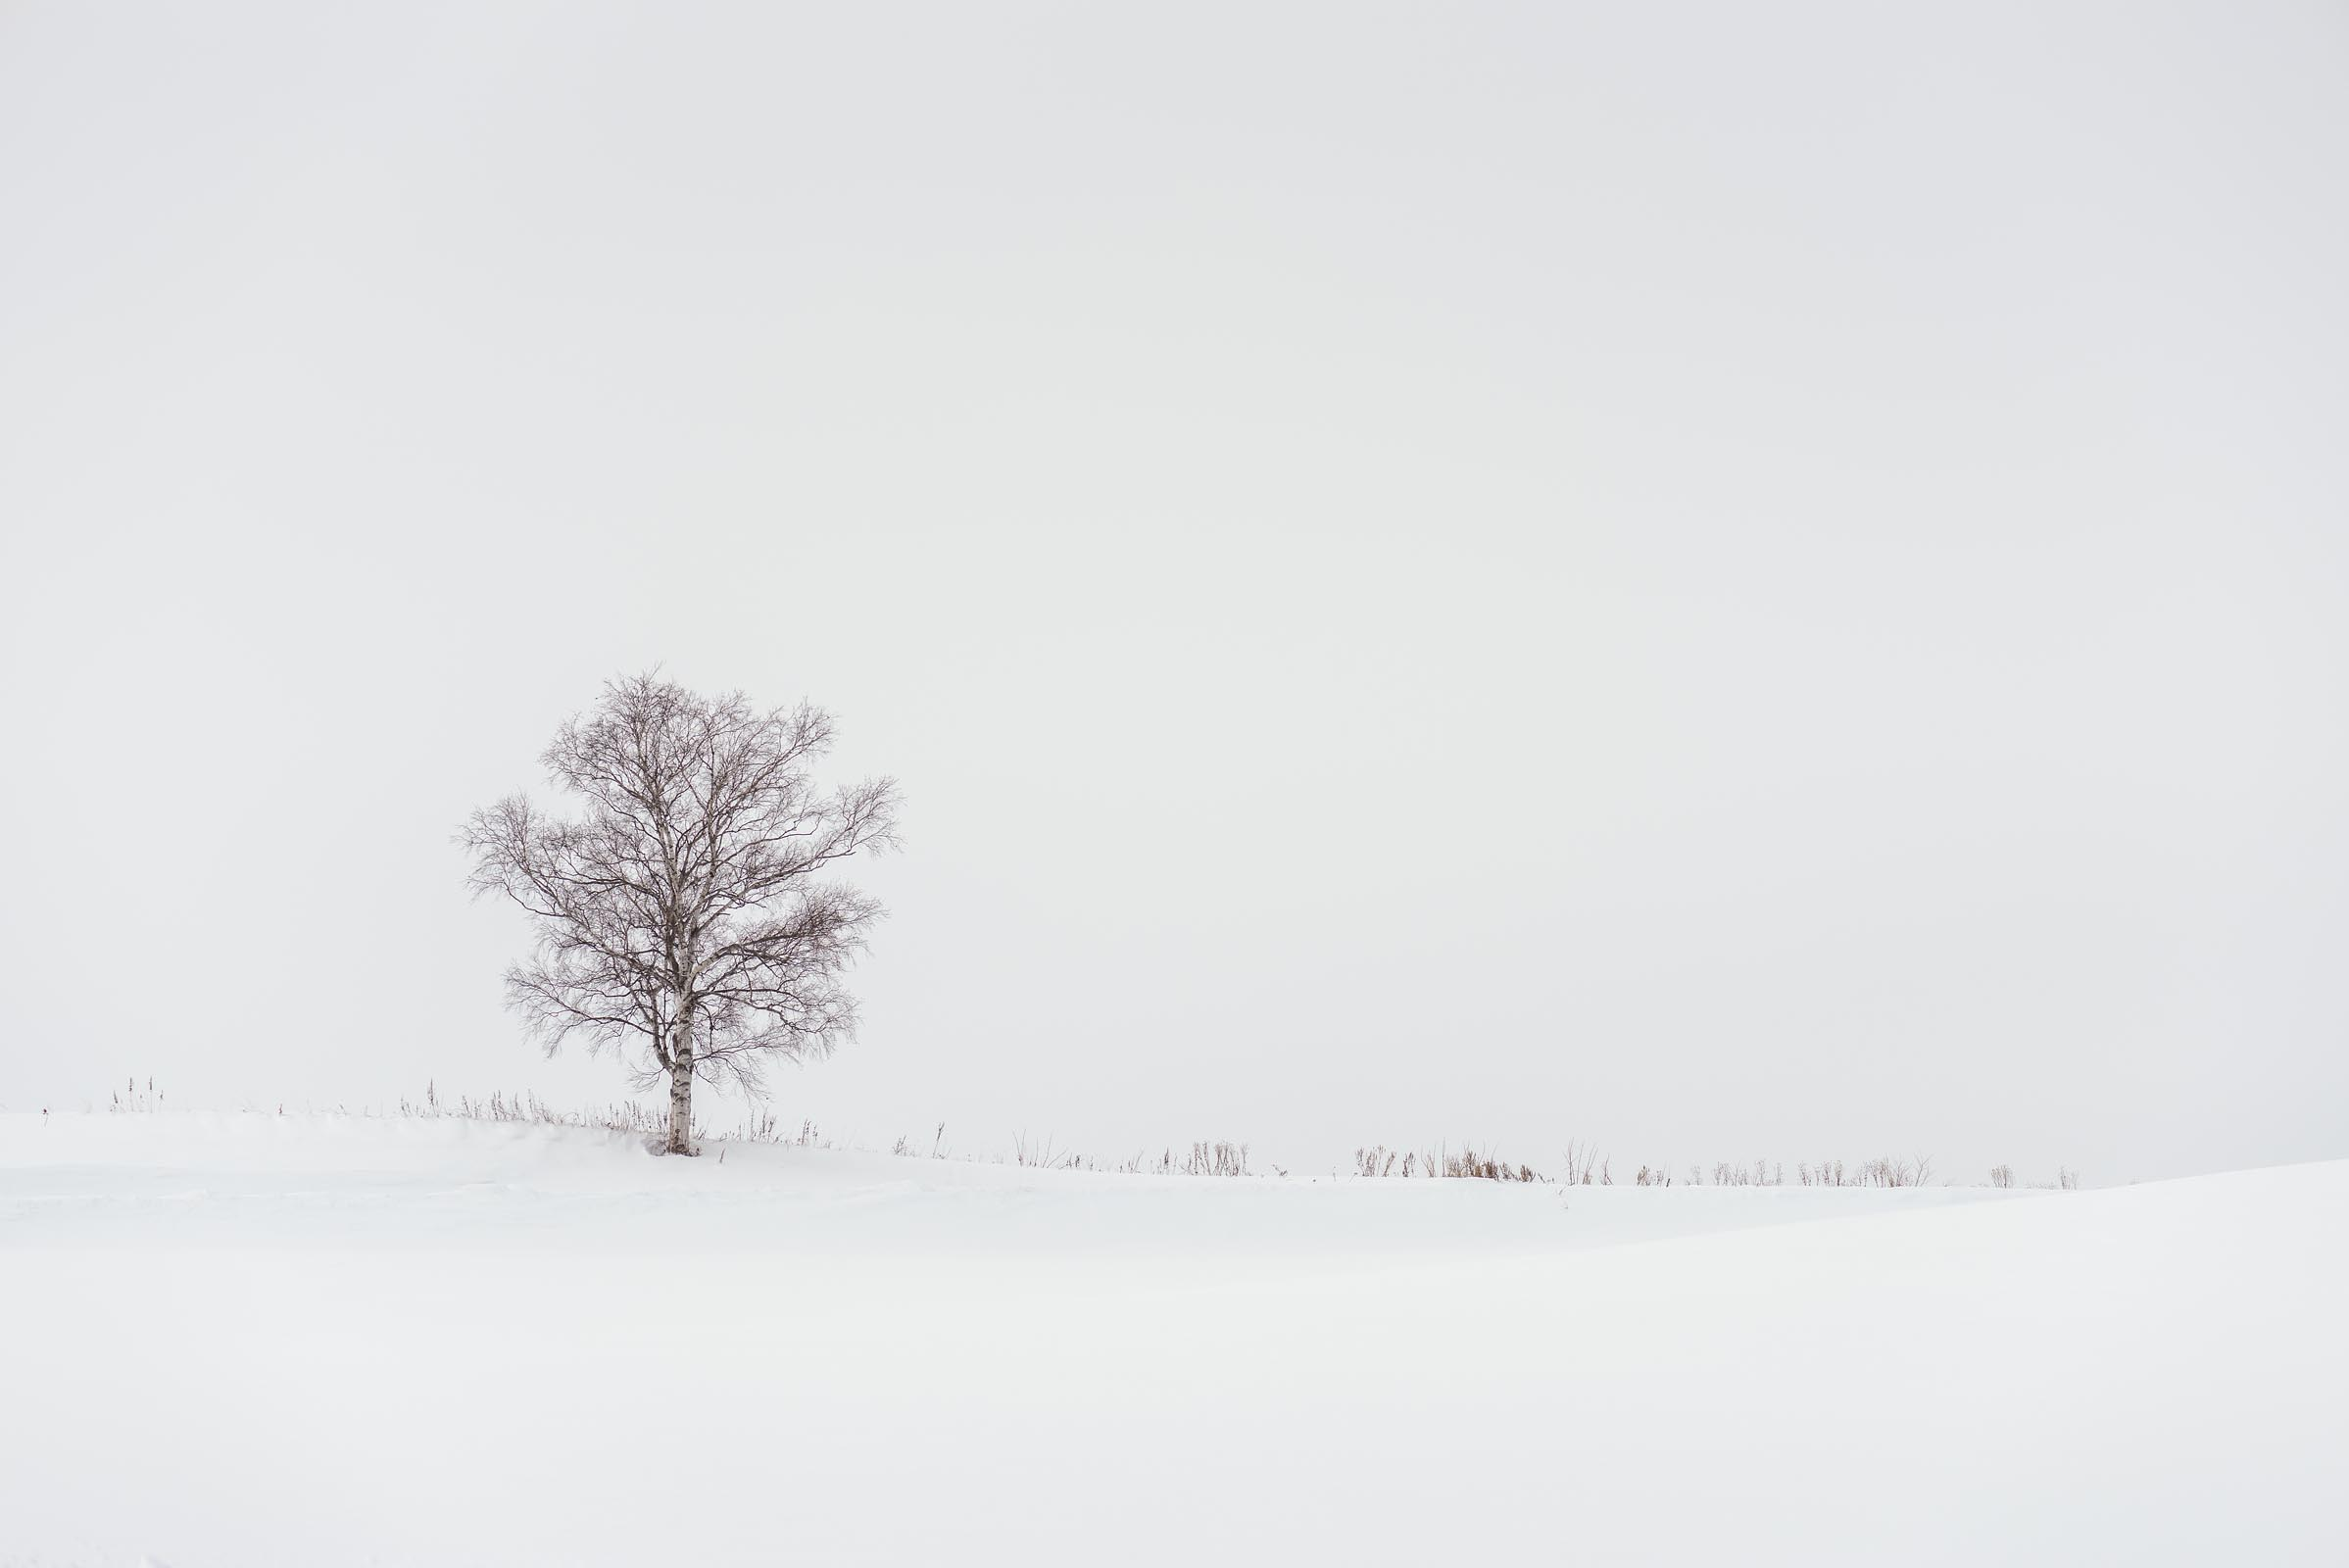 Photograph of Lone Tree in Hokkaido, Japan by Brent Goldman Photography